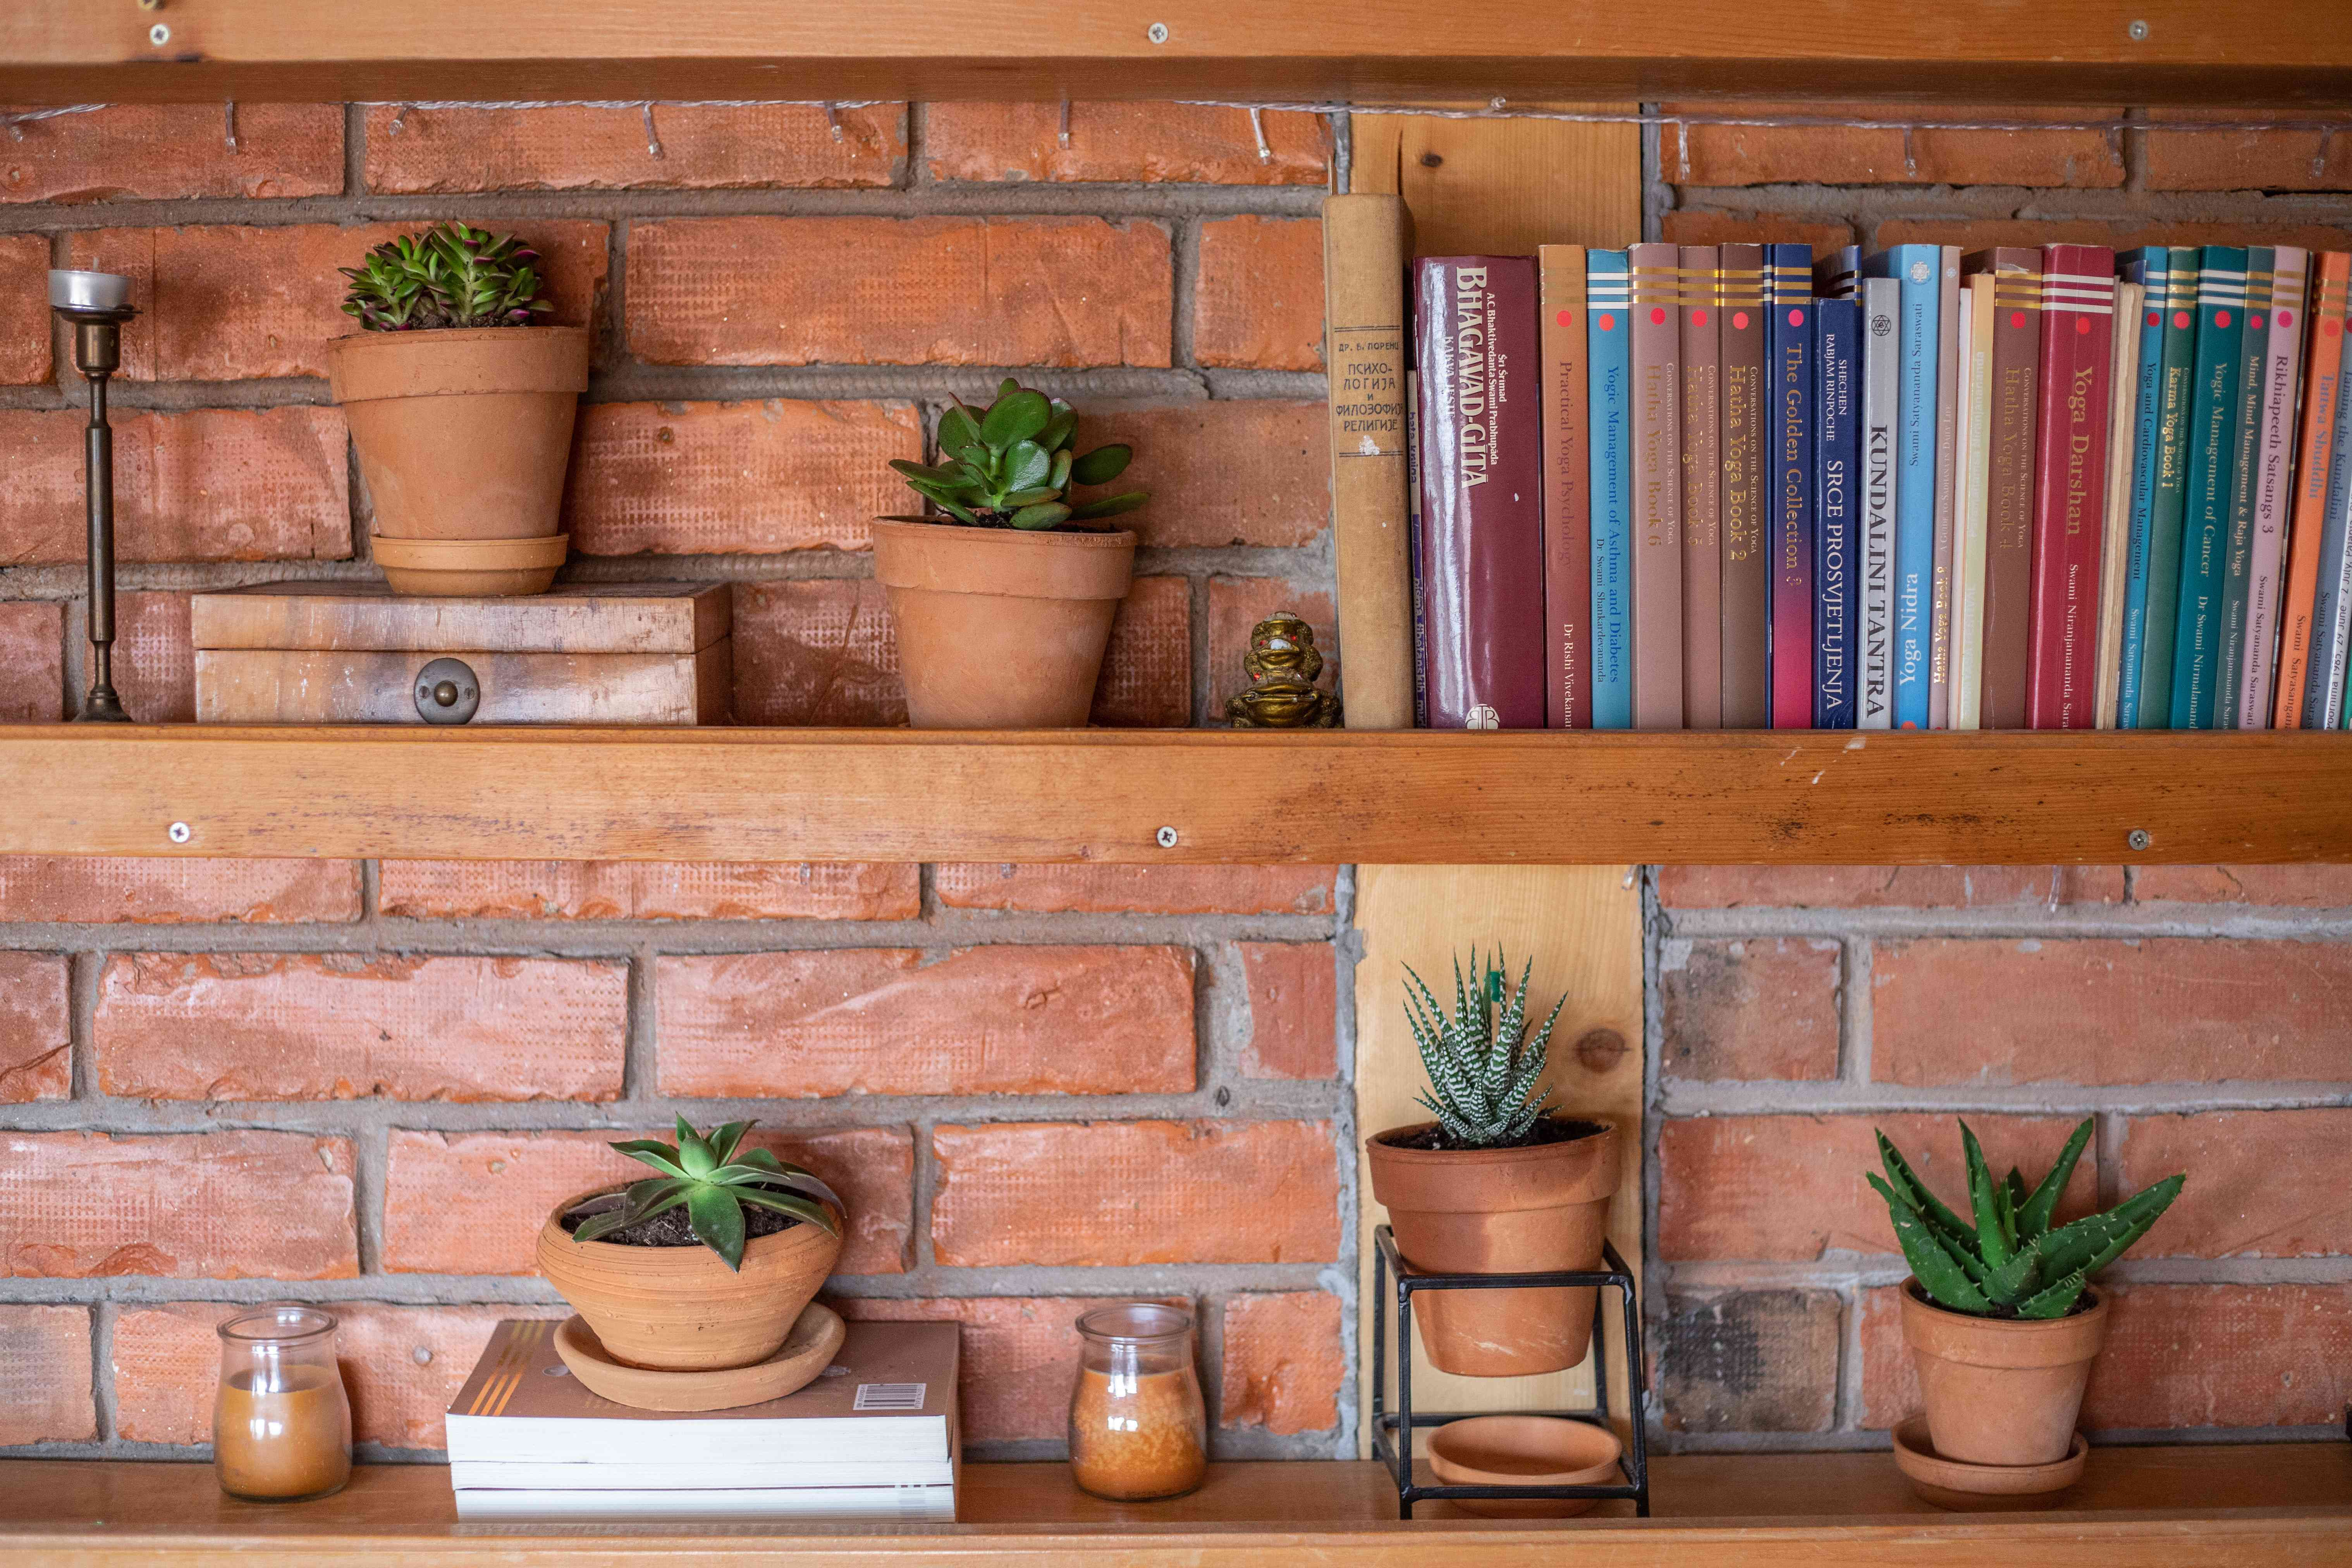 row of succulents against brick wall with row of books